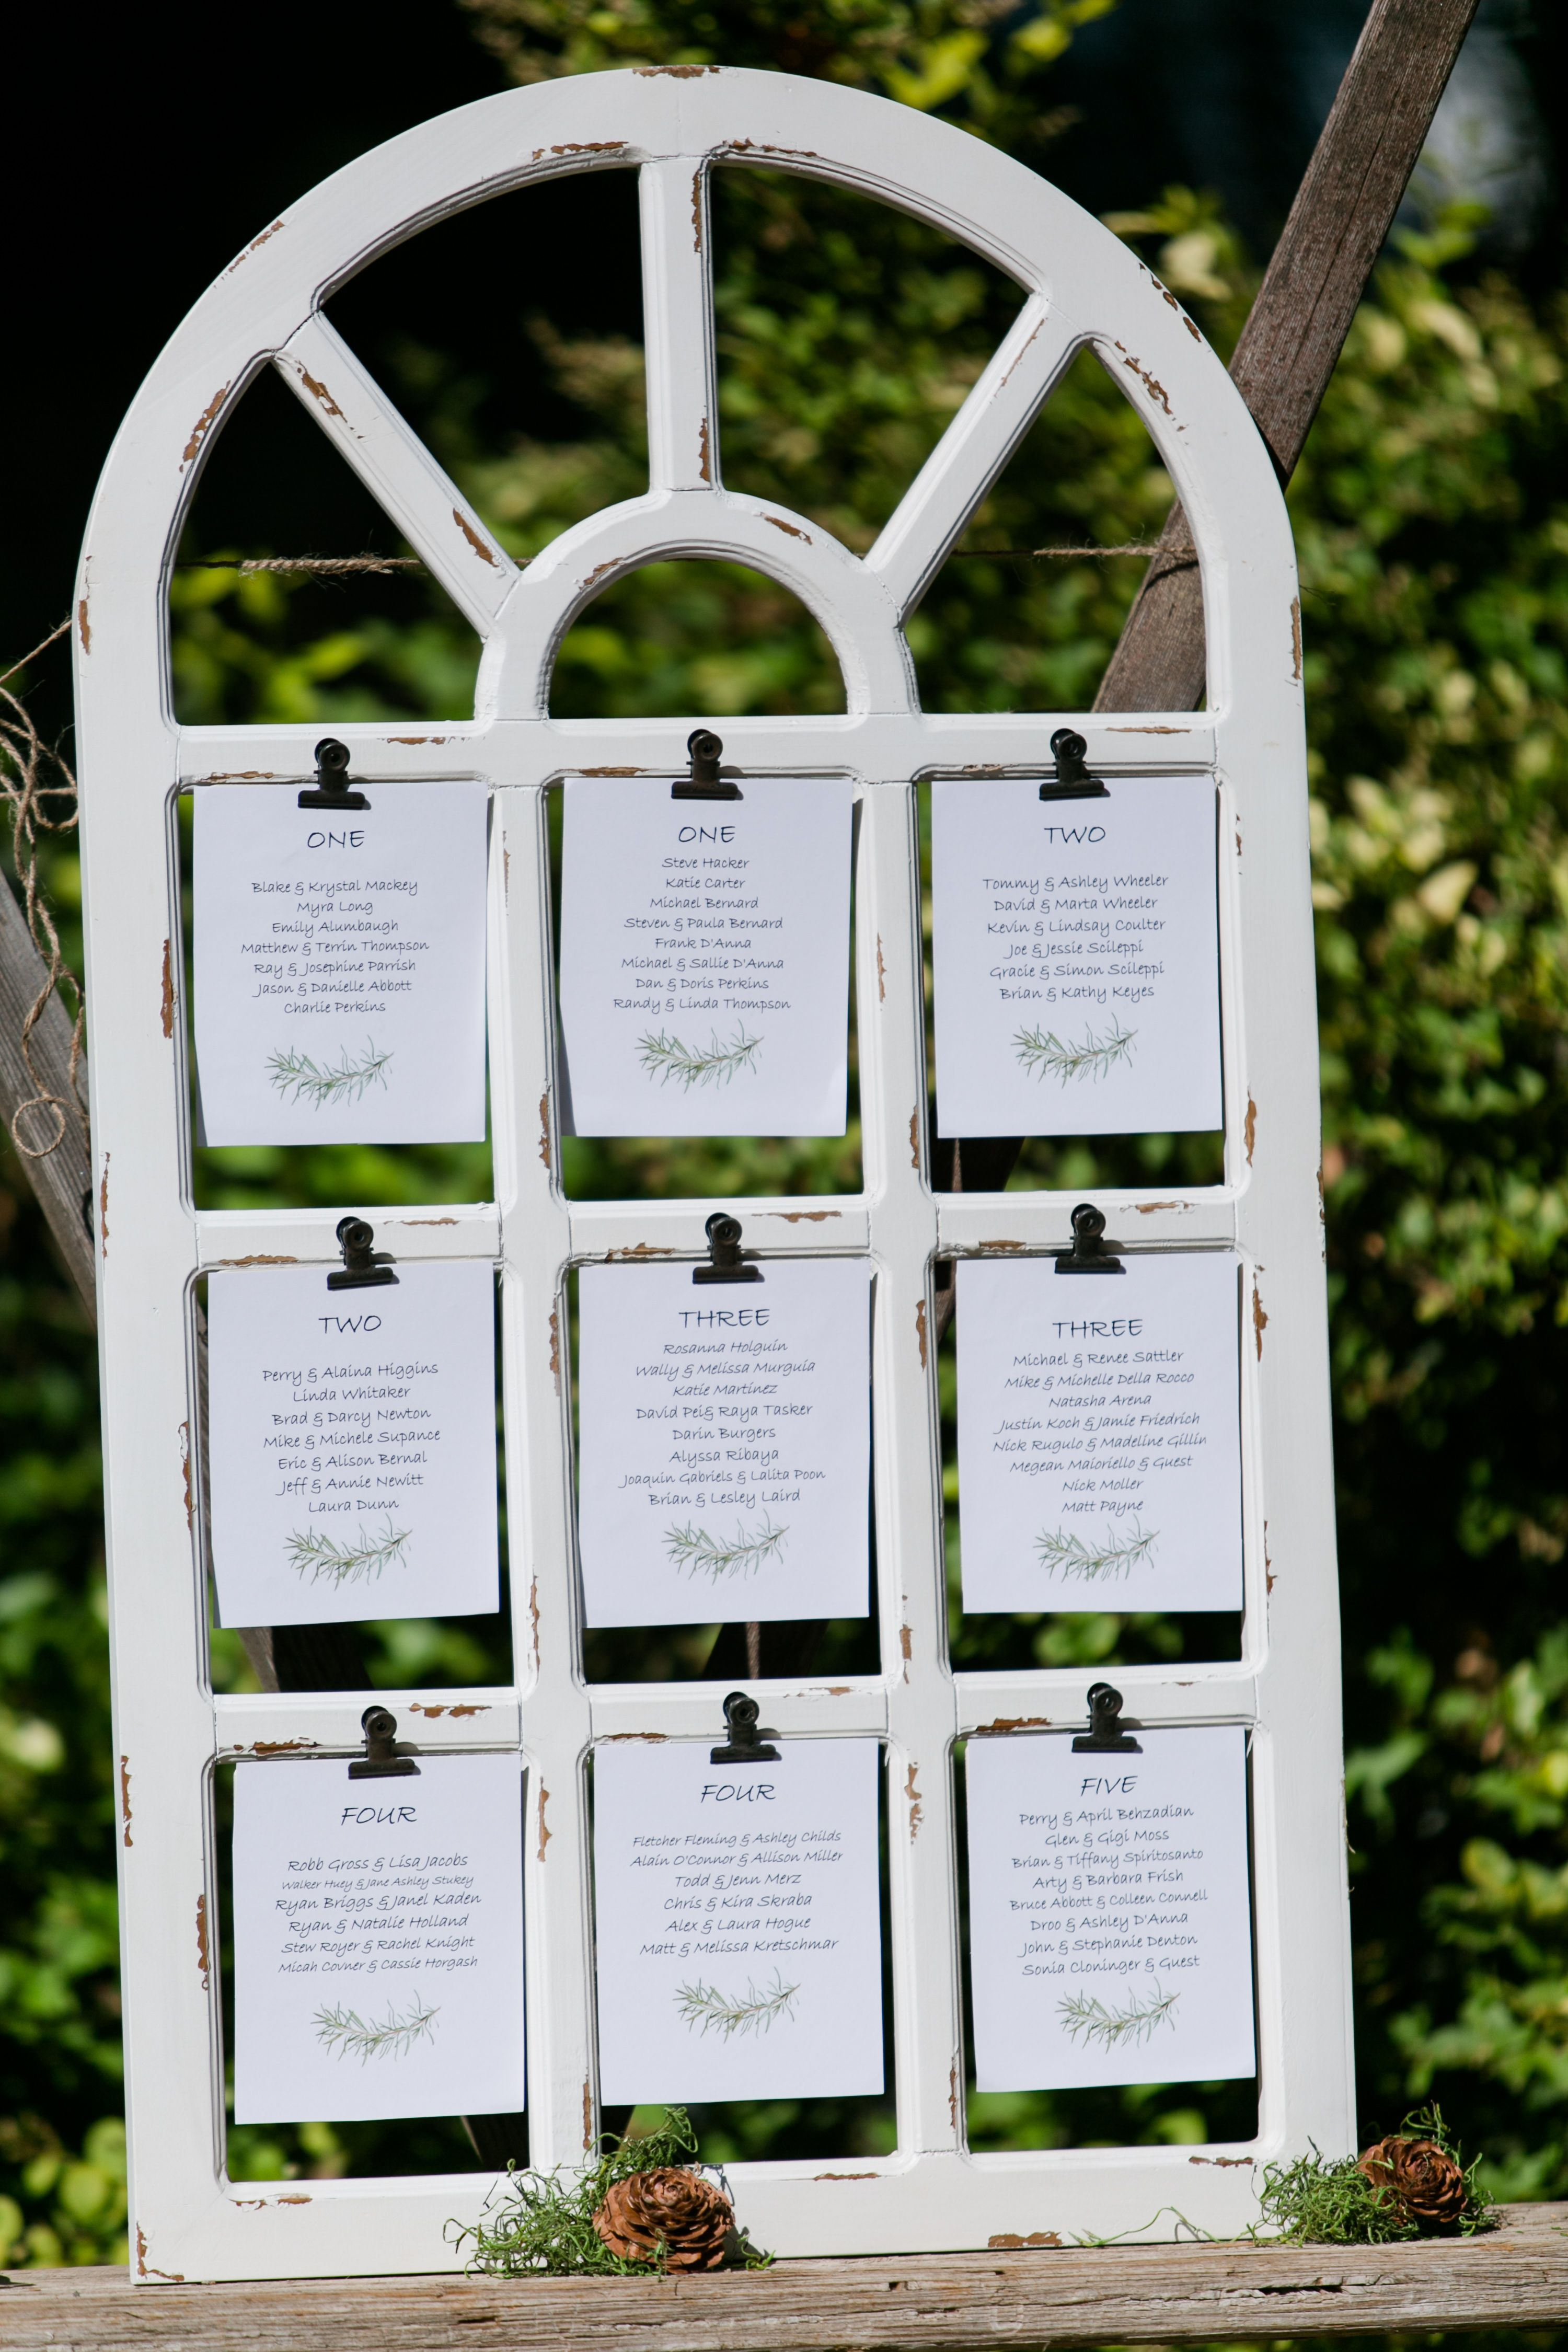 Window frame seating chart repurpose  as you can either write on the panes with glass pen or clip your also charming outdoor wedding ideas for spring springtime rh pinterest